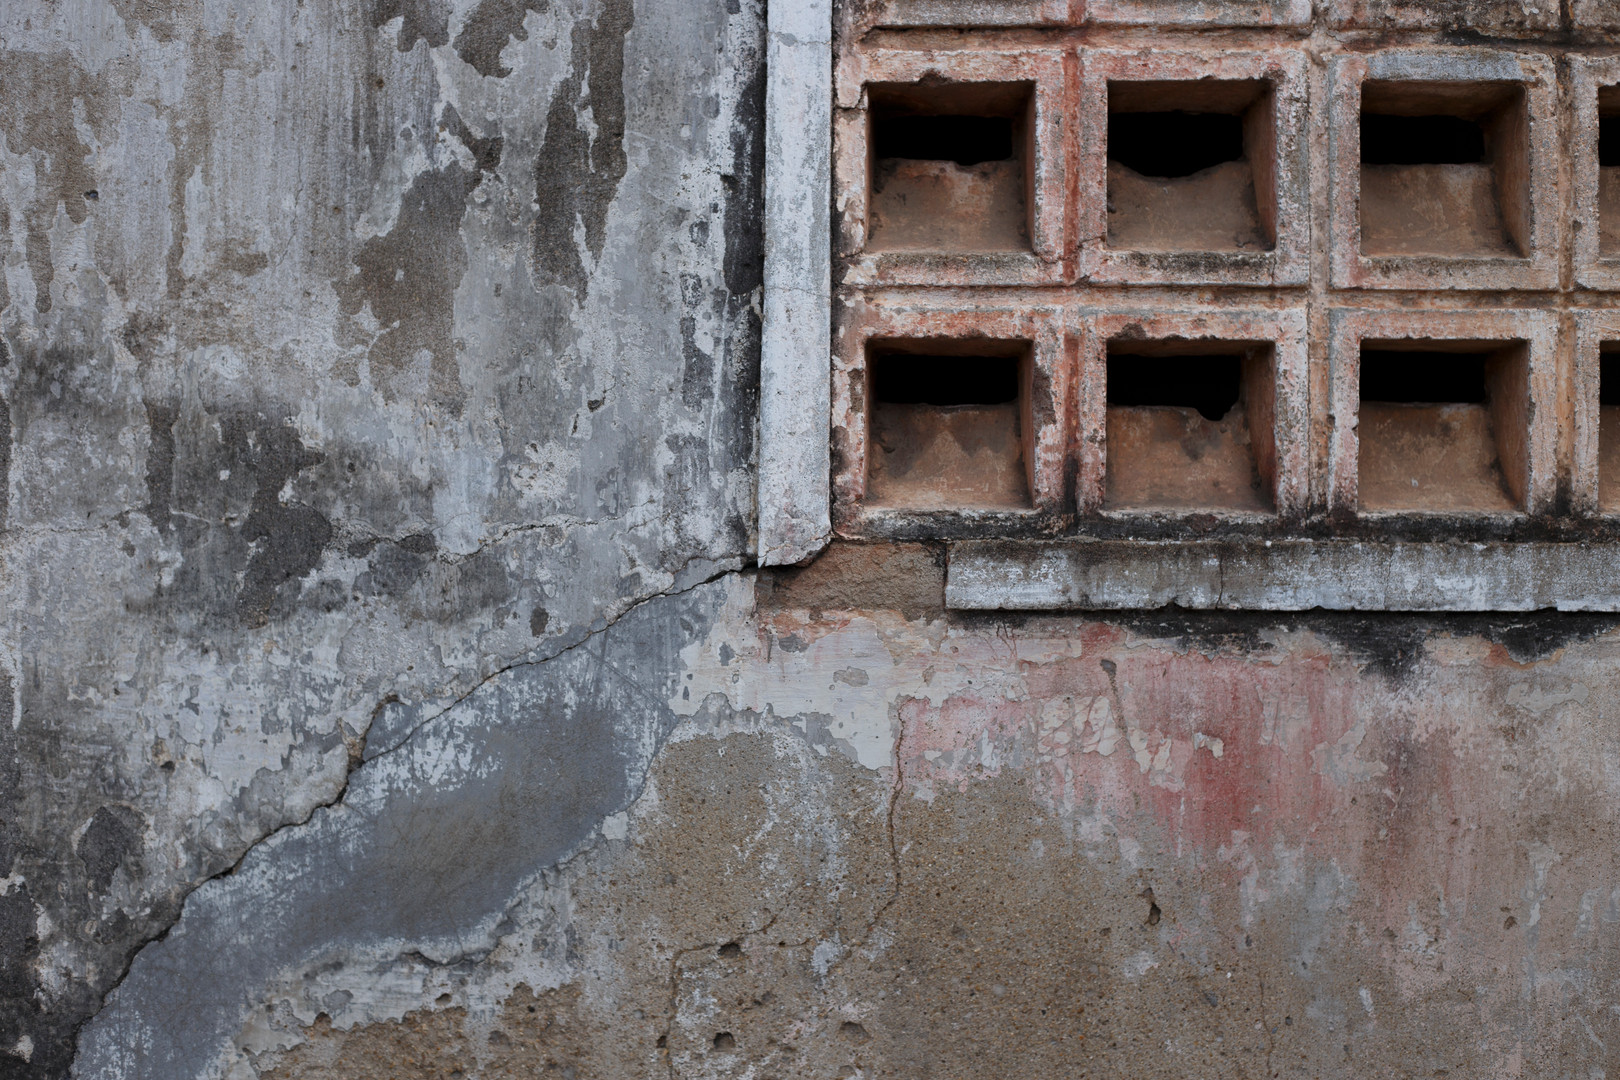 A slowing crumbling wall at the Tuol Sleng Genocide Museum, Phnom Penh, Cambodia